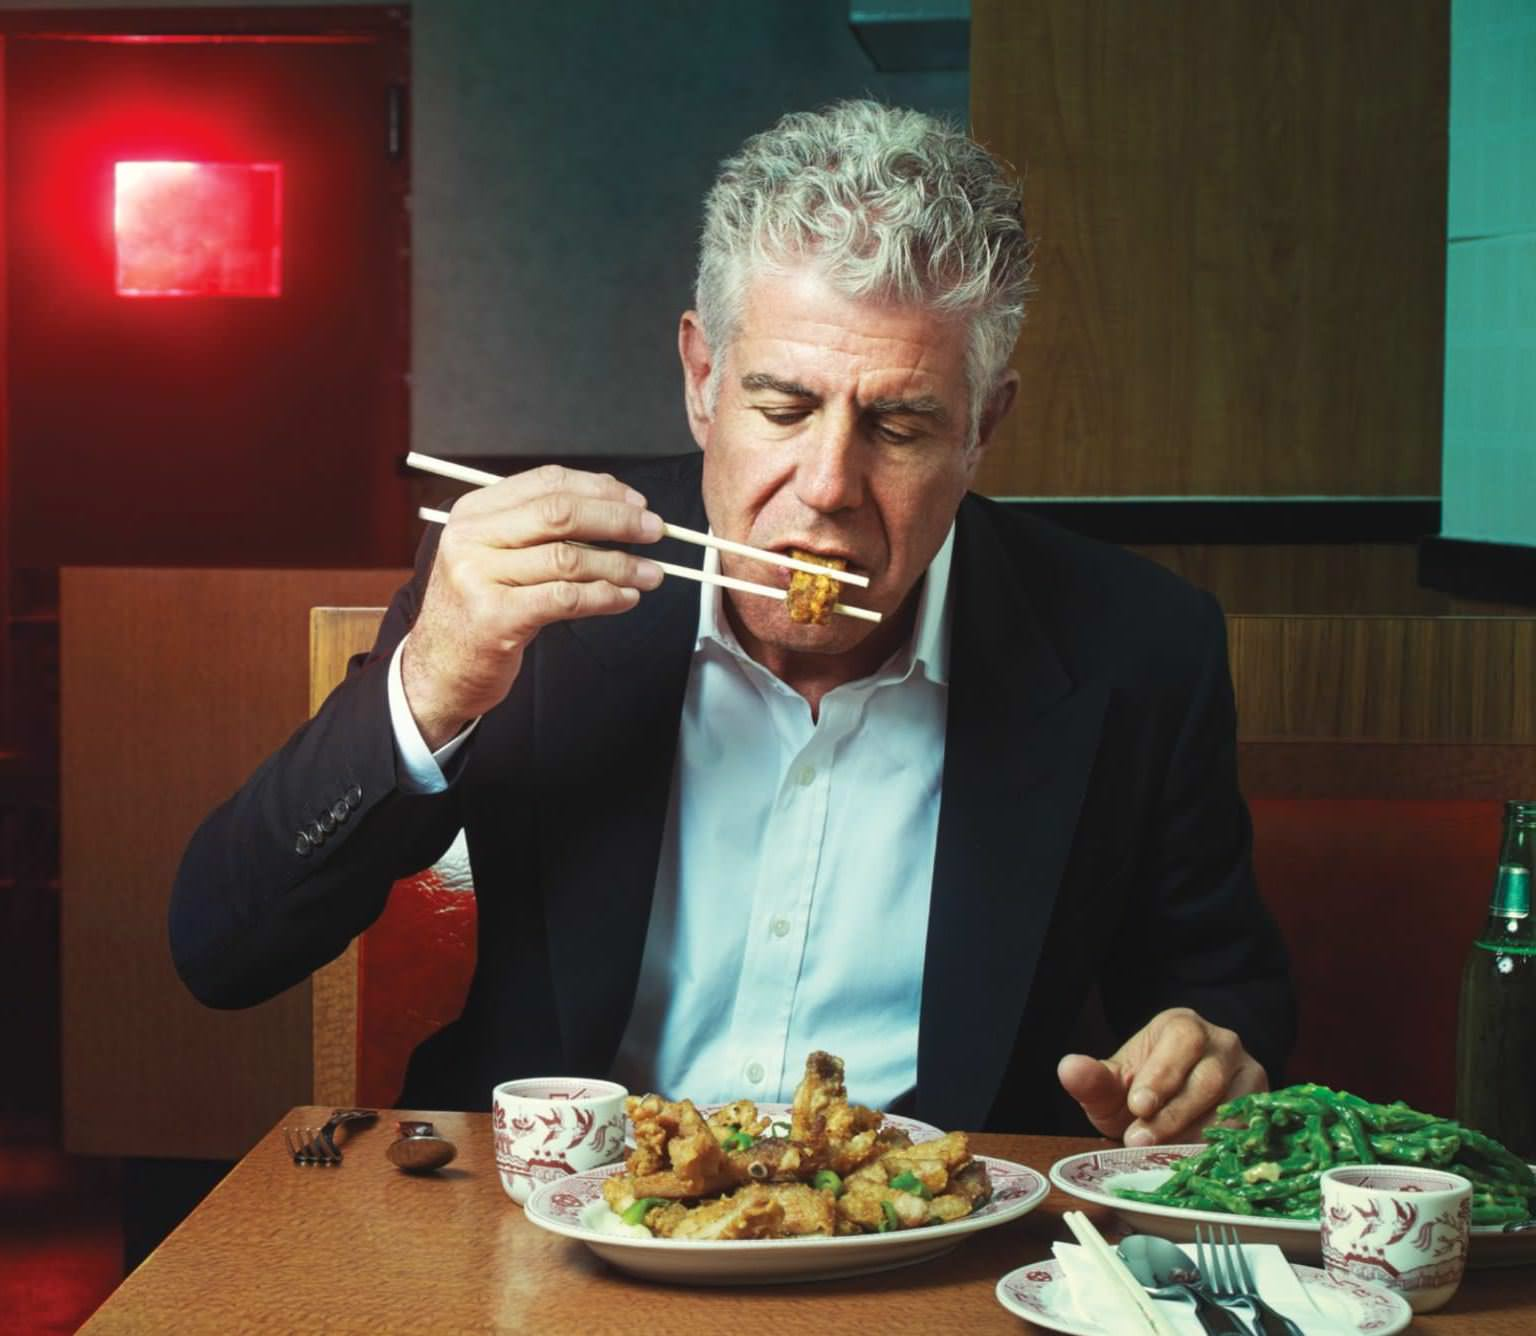 Anthony Bourdain on Food Porn YouTube Stars  Whats Next